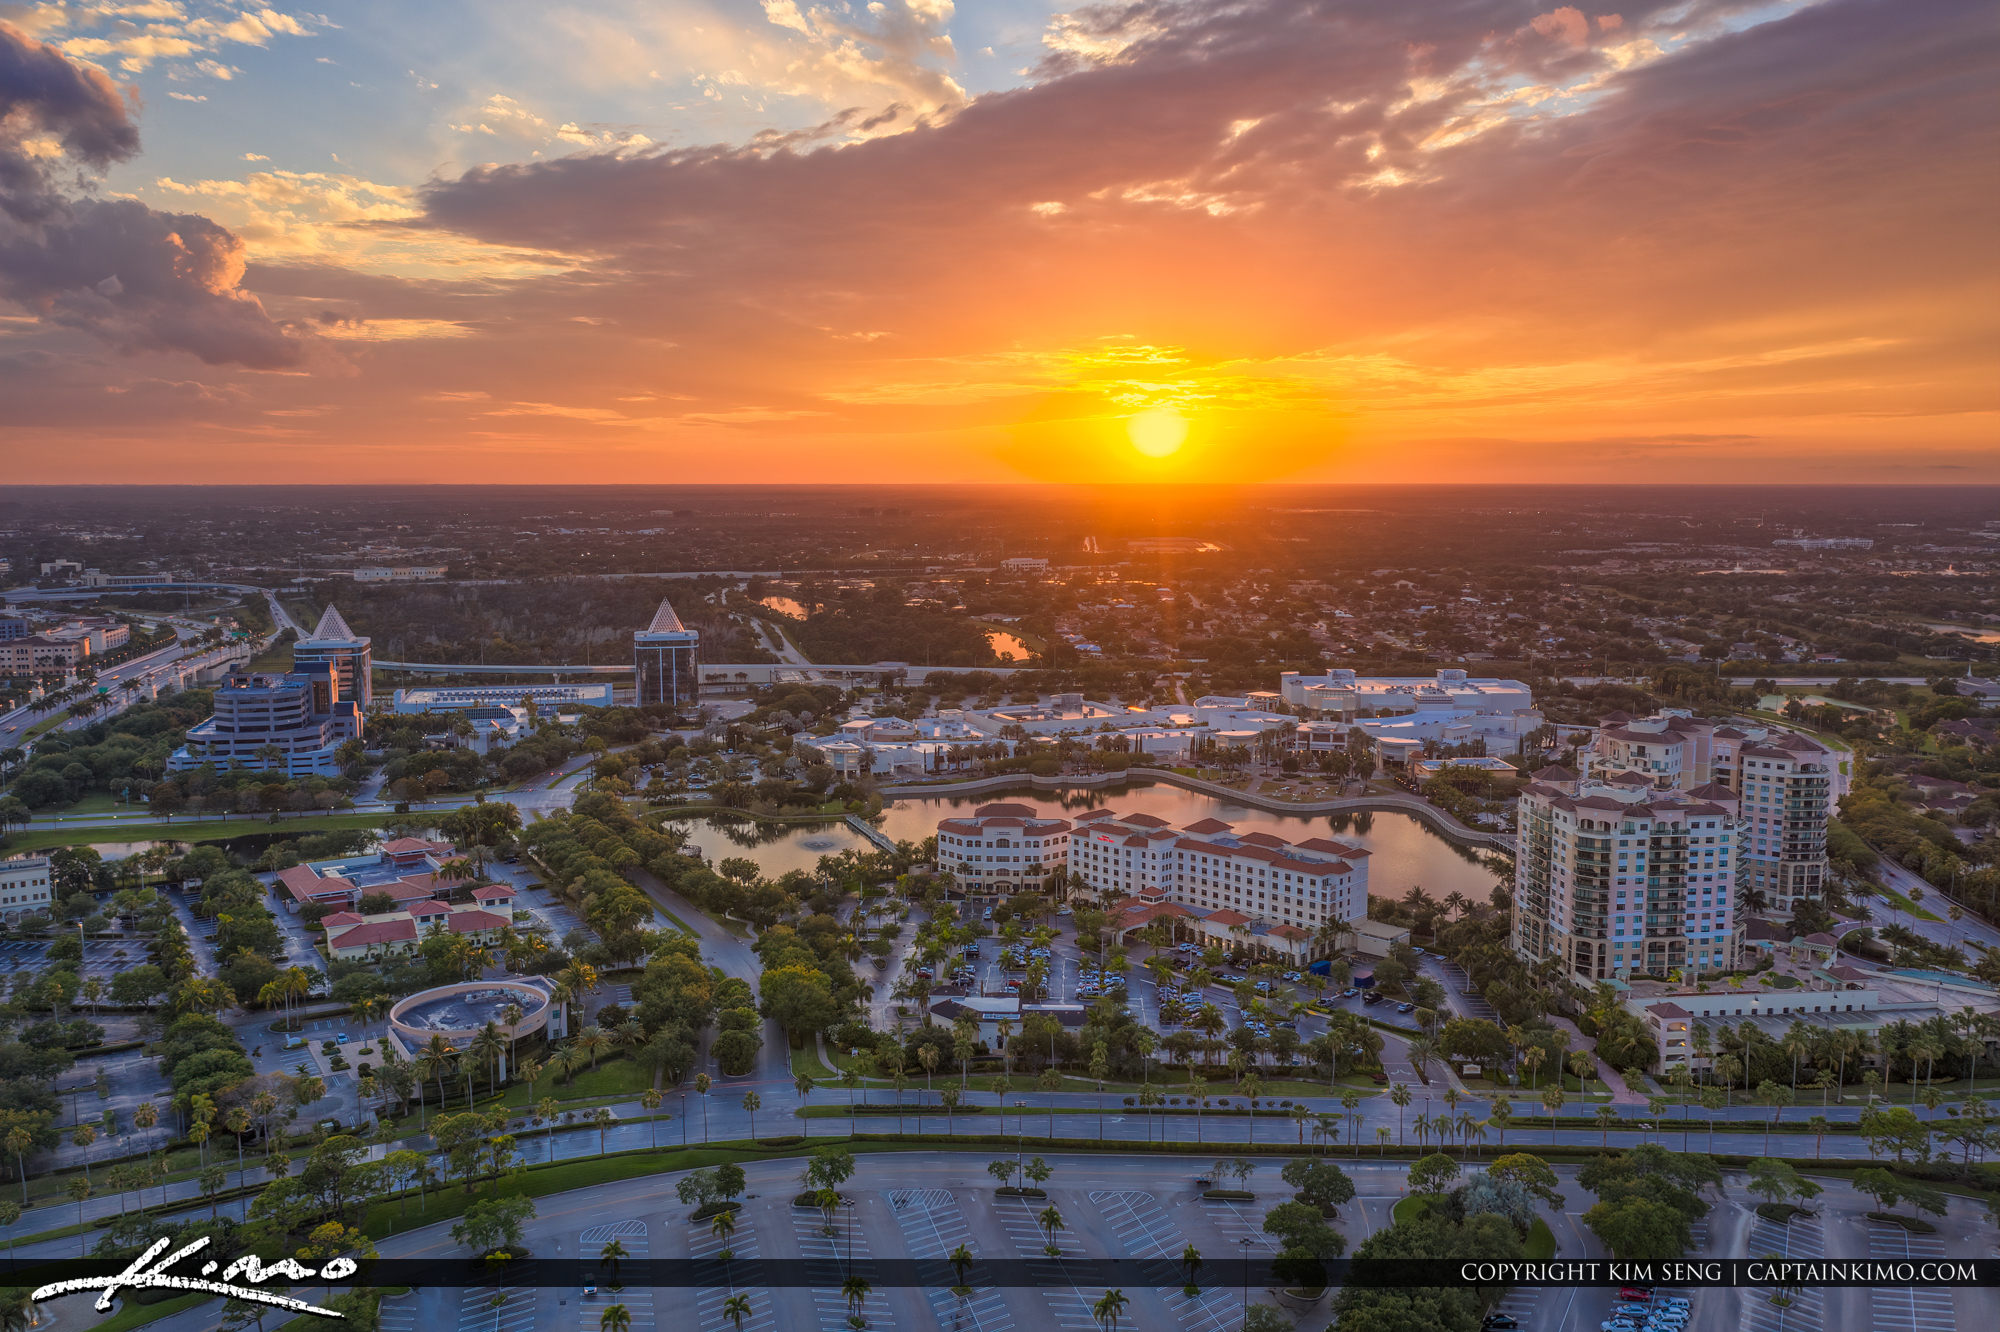 Palm Beach Gardens Sunset Over Downtown at the Gardens